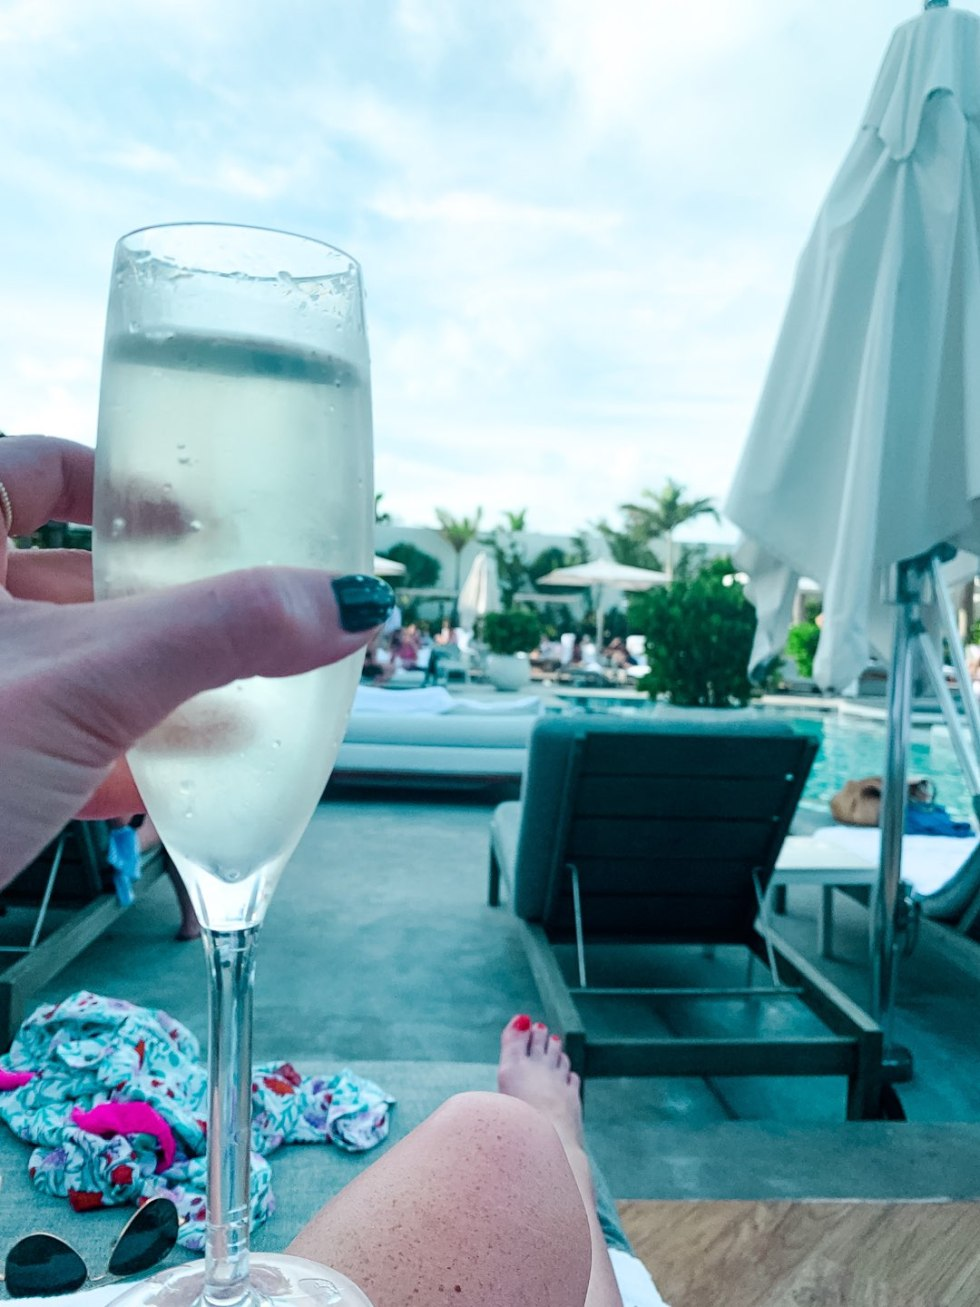 Warming Up in the Bahamas: the Best Things to Do at Baha Mar - I'm Fixin' To - @mbg0112 | Warming Up in the Bahamas: the Best Things to Do in Baha Mar by popular North Carolina travel blog, I'm Fixin' To: image of woman sitting by a pool at the Baha Mar.